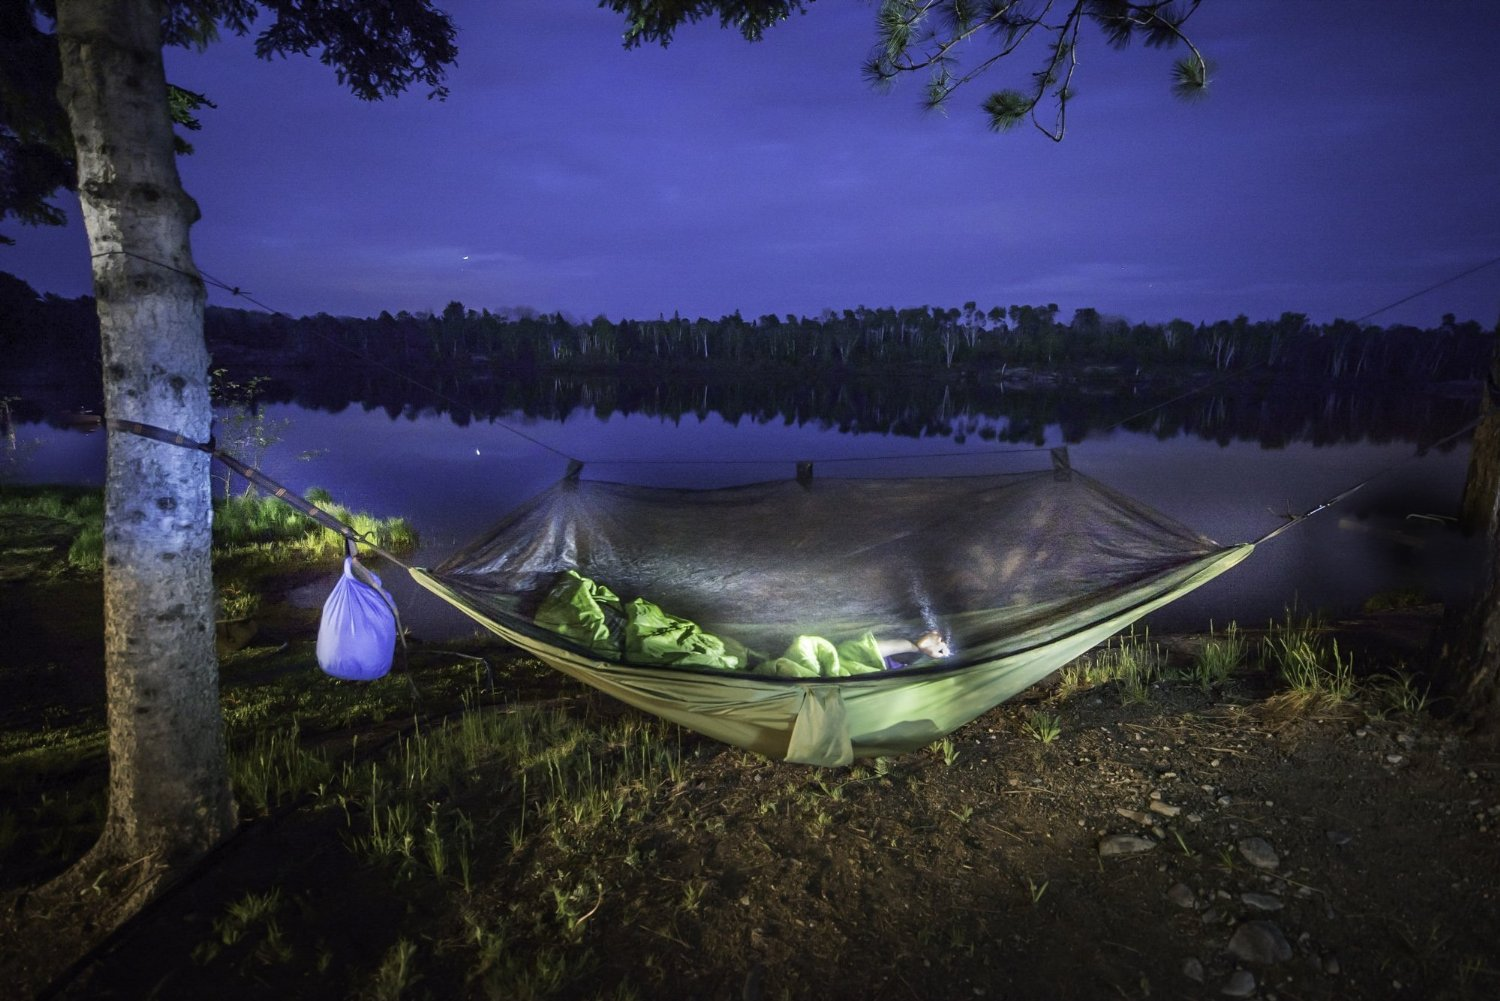 A hammock with rainfly and bug net